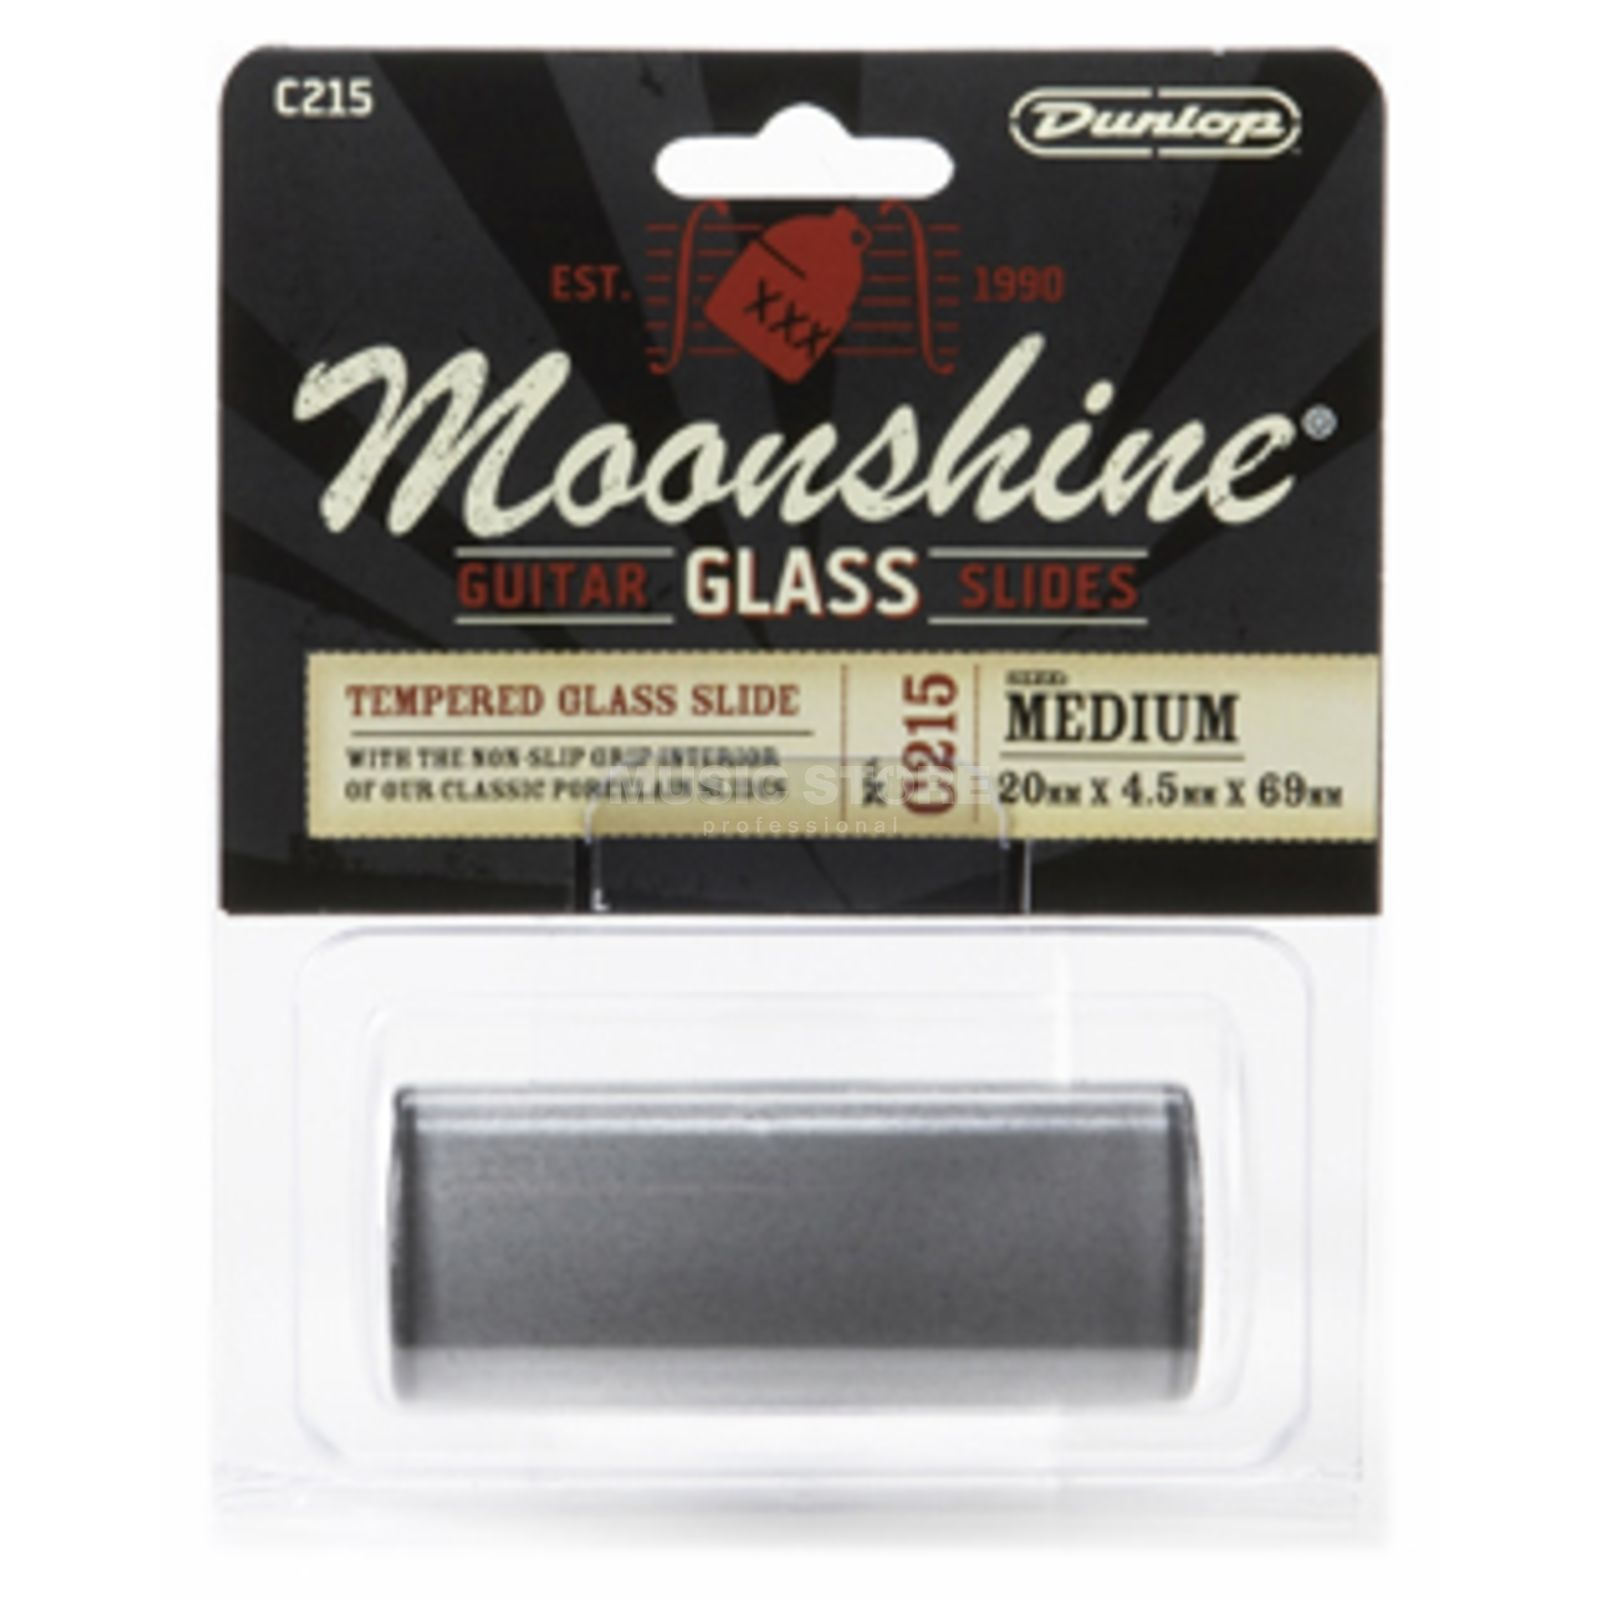 Dunlop C215 Moonshine Glass Slide medium Produktbild